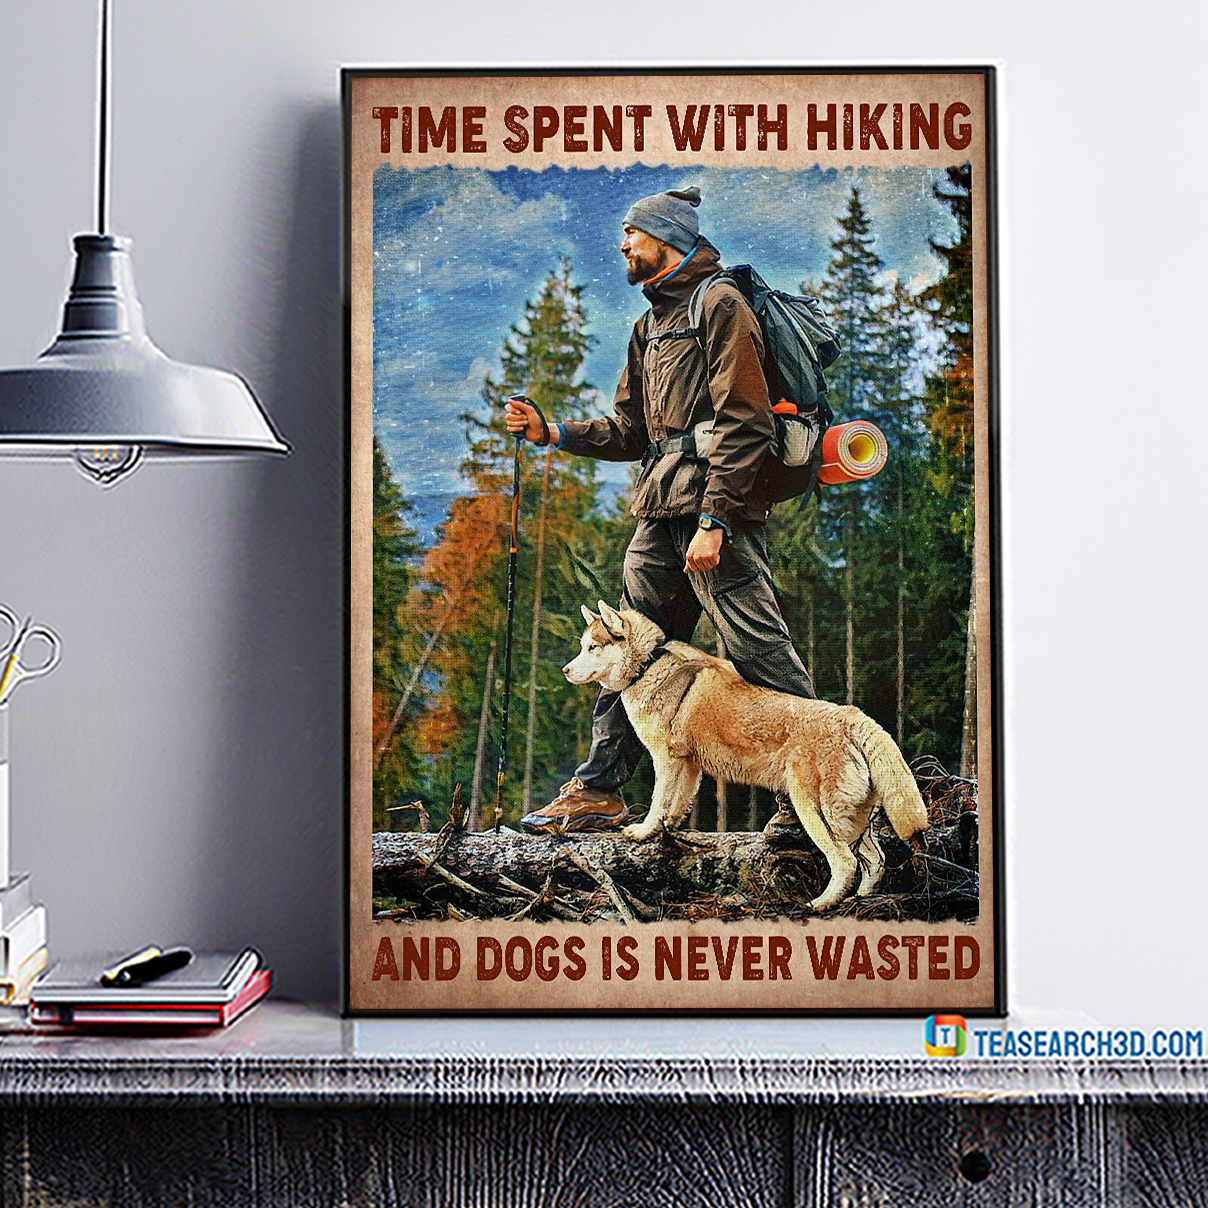 Time spent with hiking and dogs is never wasted poster